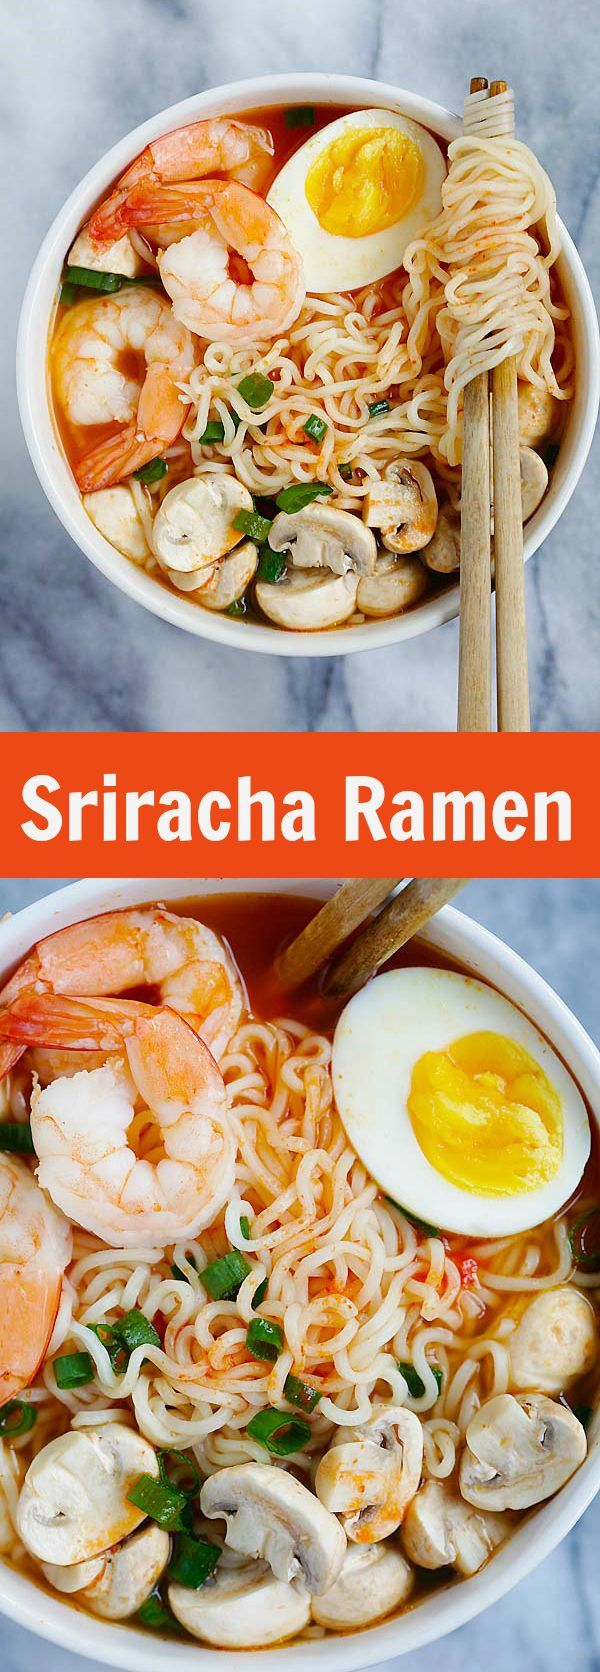 Sriracha Ramen – the best homemade ramen ever with spicy Sriracha broth and yummy toppings. So easy and takes only 15 minutes   http://rasamalaysia.com